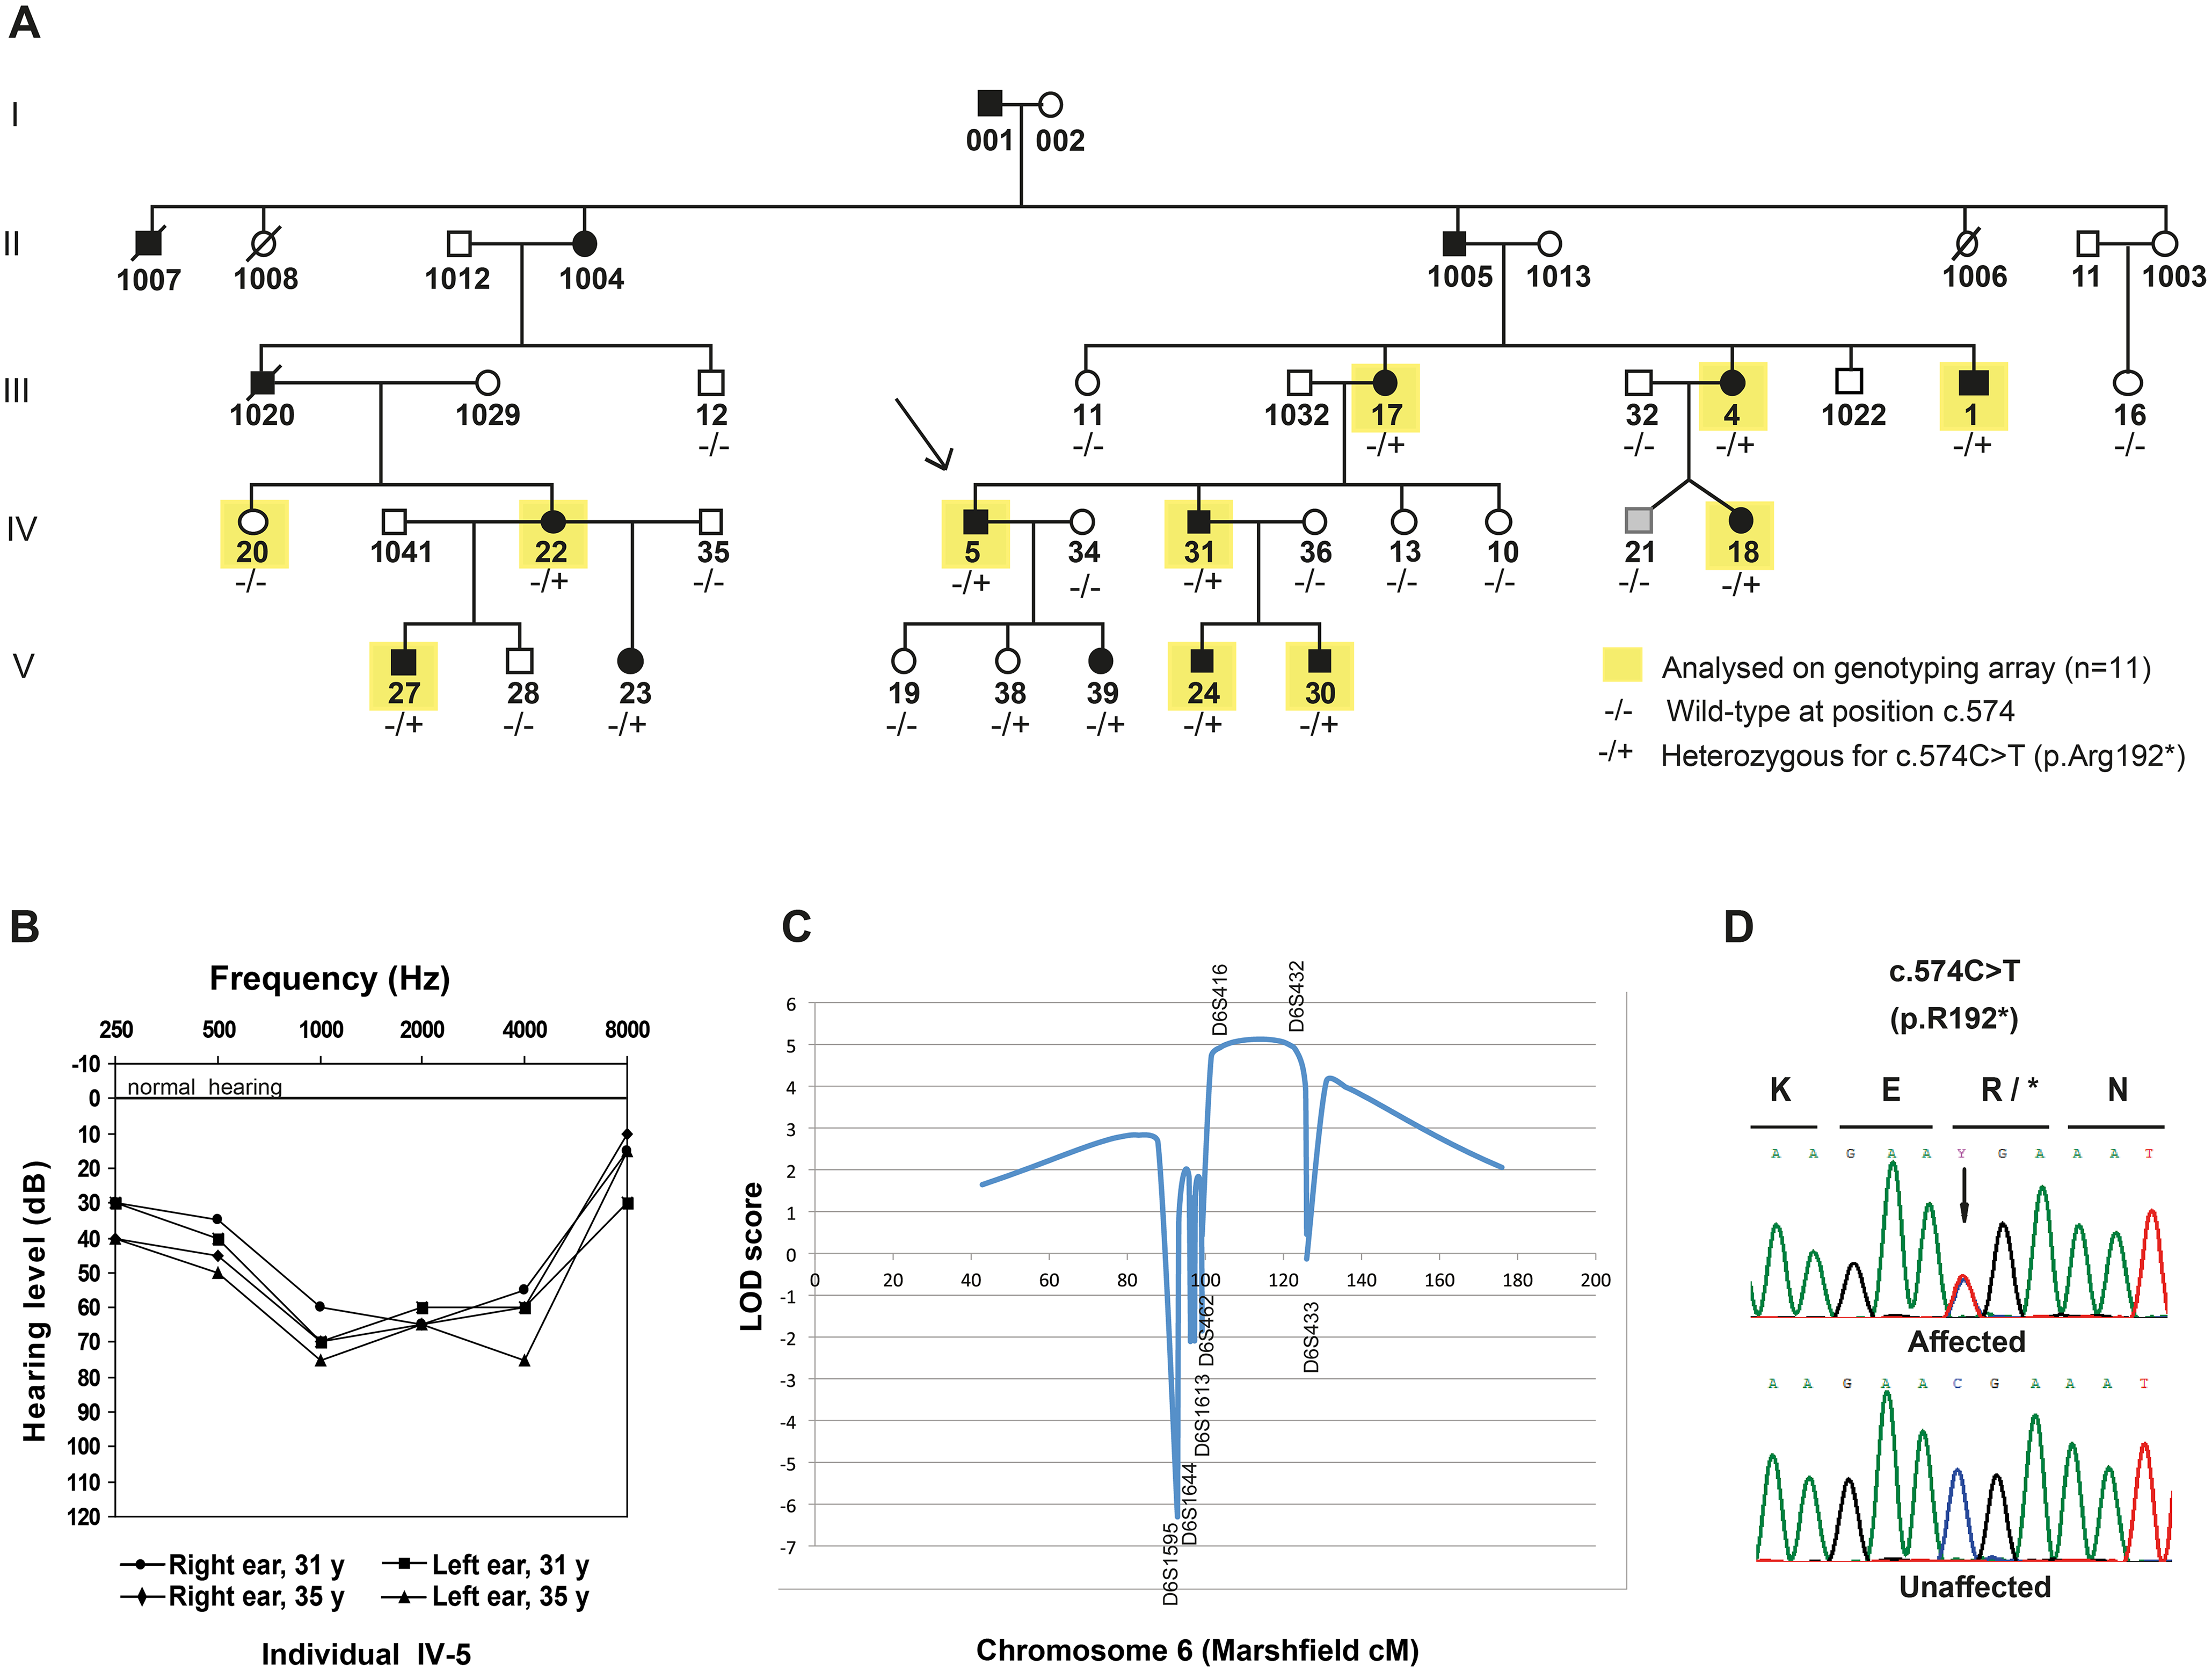 Pedigree, audiograms and linkage peak for a novel locus for dominant inherited nonsyndromic hearing impairment (NSHI).